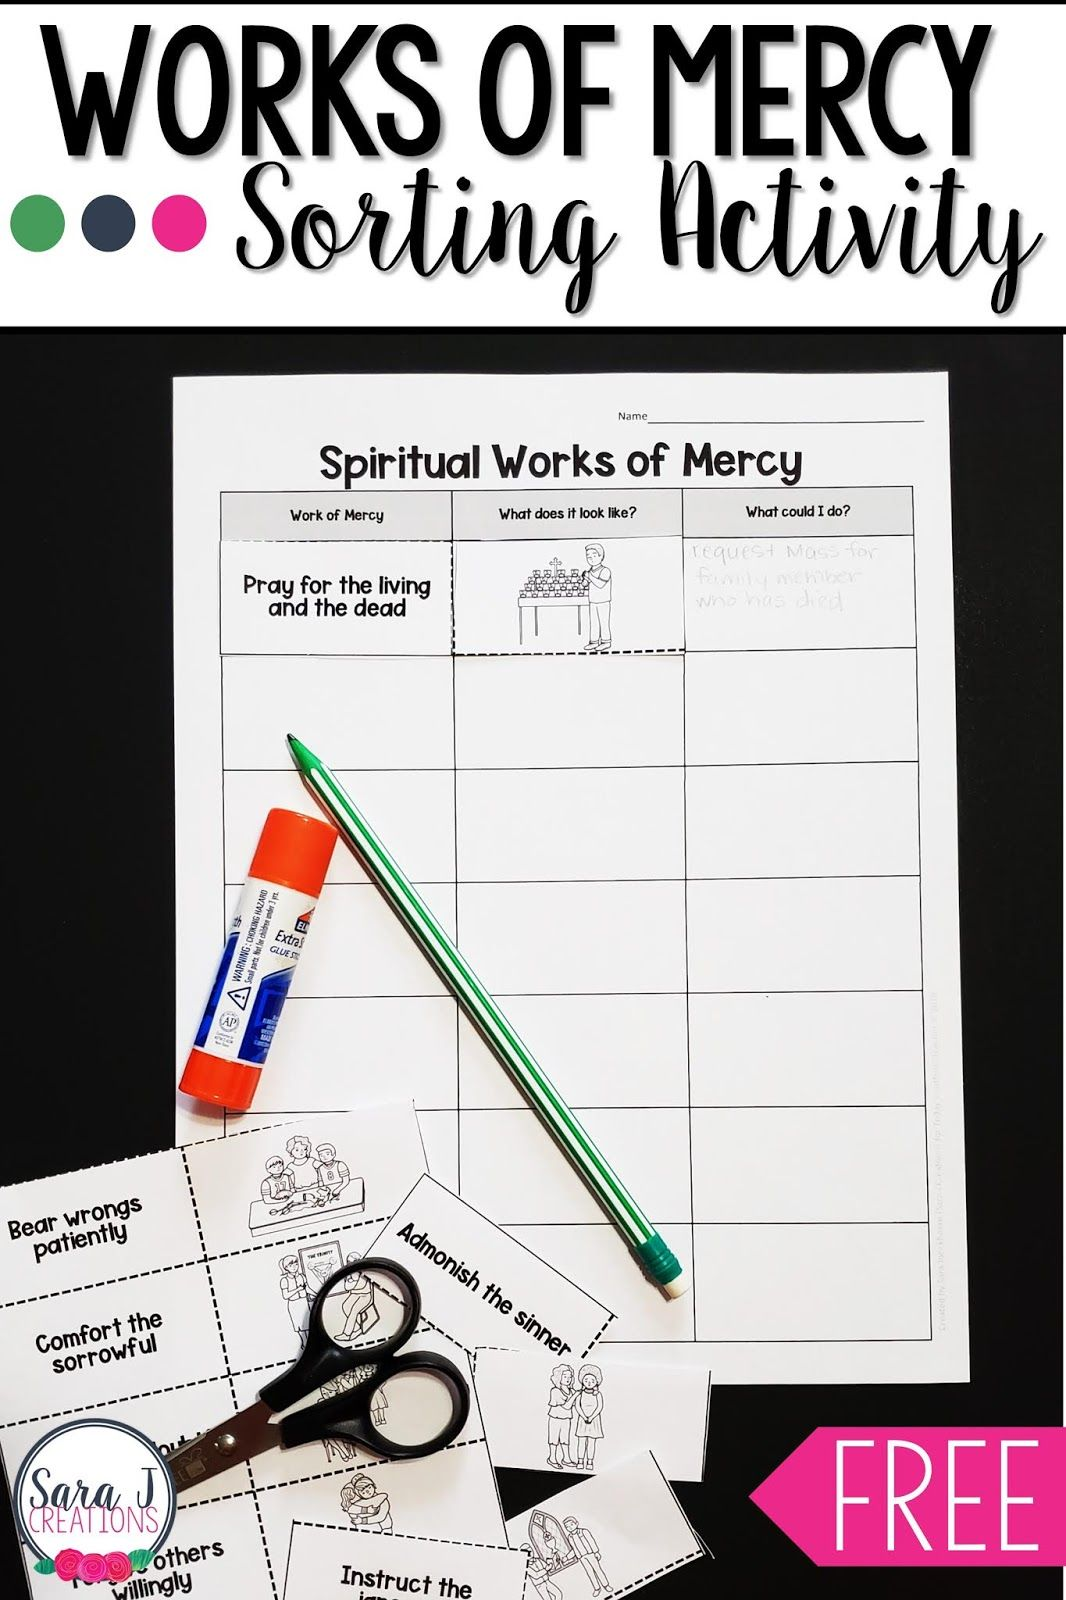 Corporal And Spiritual Works Of Mercy Sorting Activity In